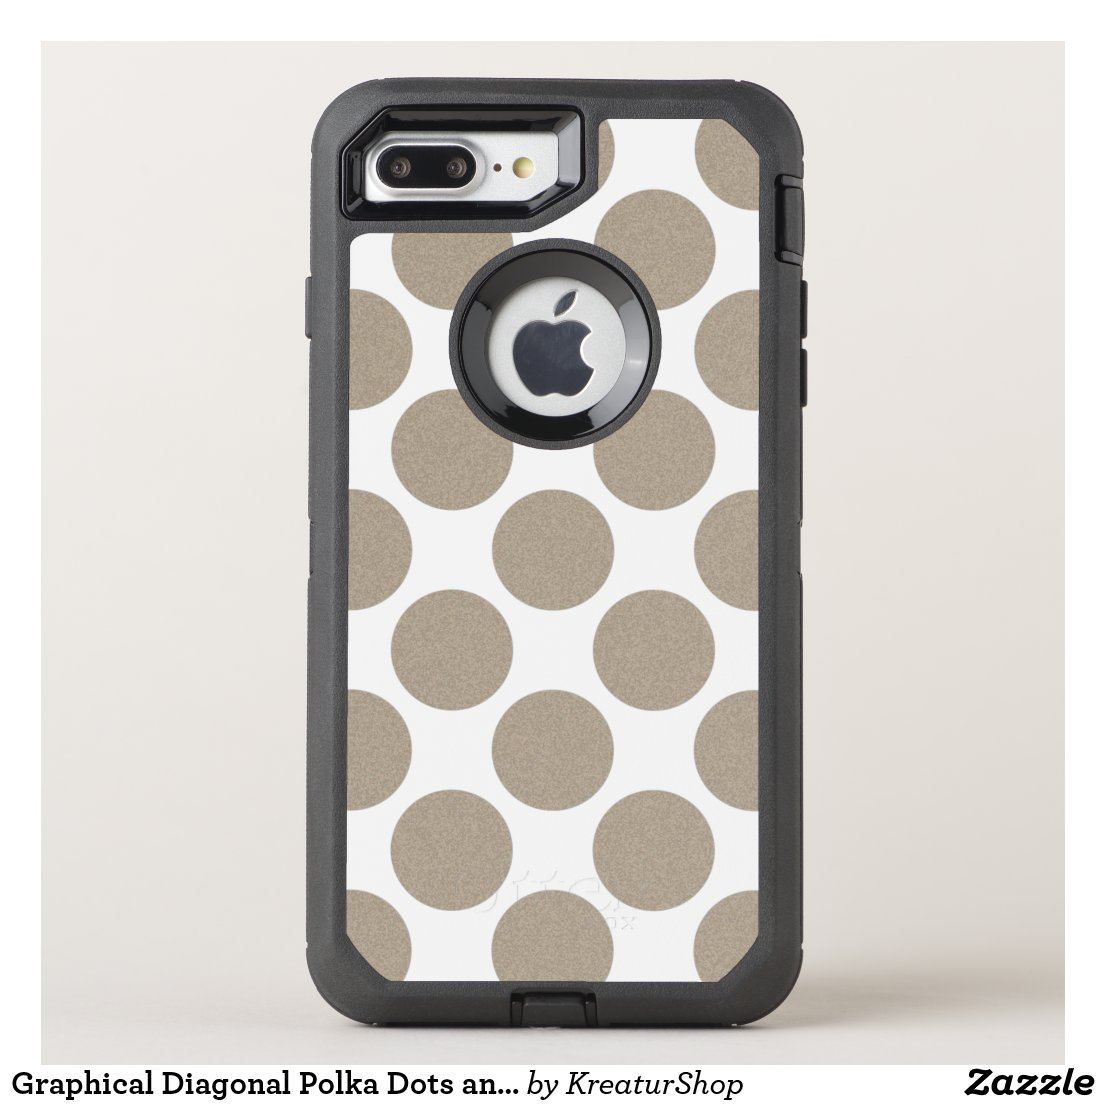 Graphical Diagonal Polka Dots any Color on White